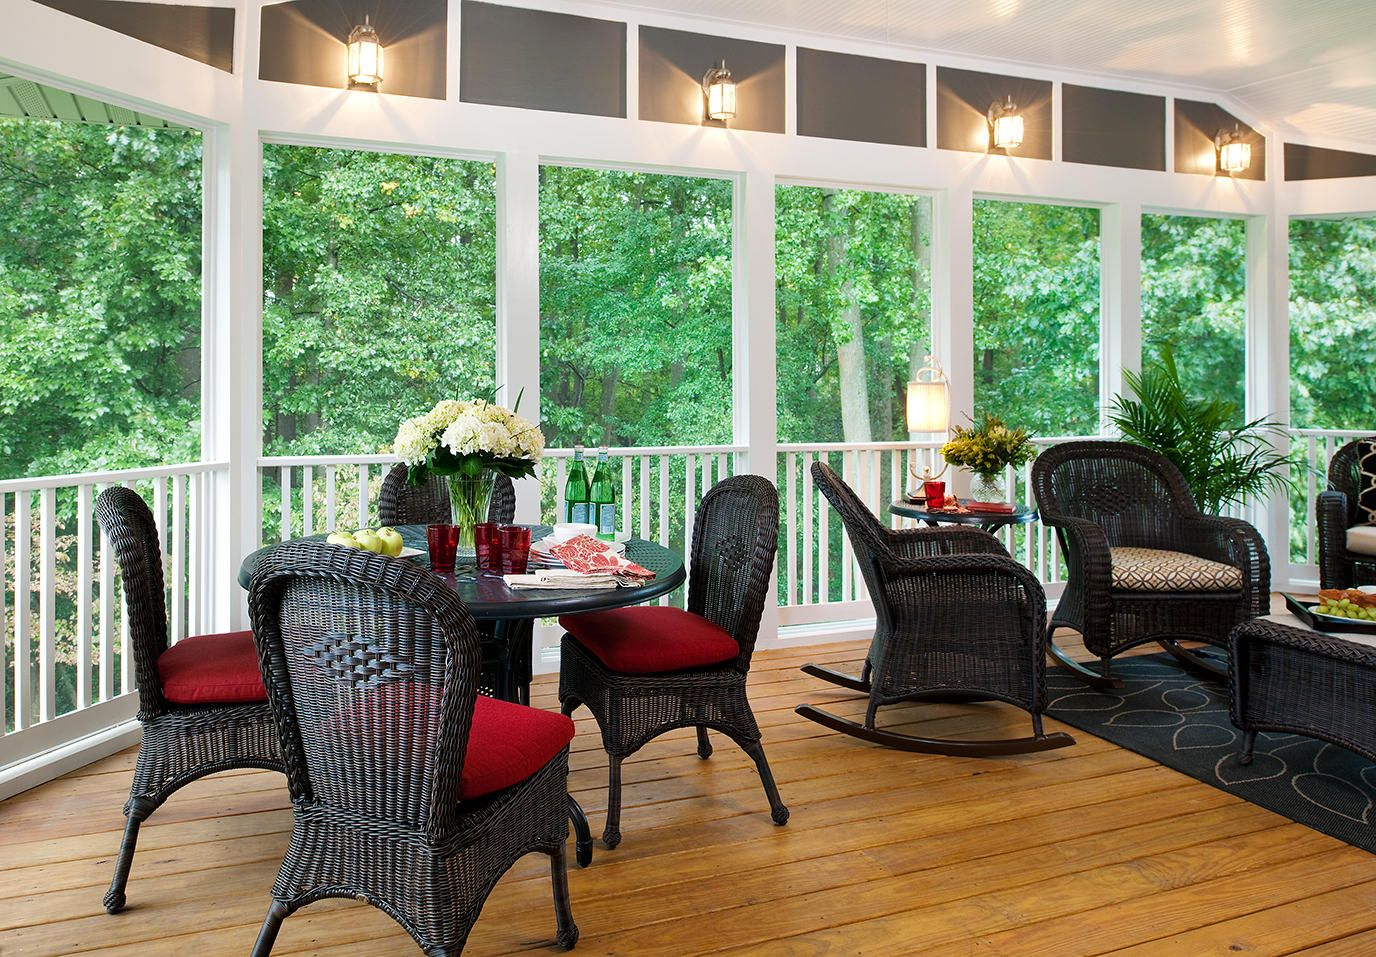 17 best images about elegantly furnished screened in porch on